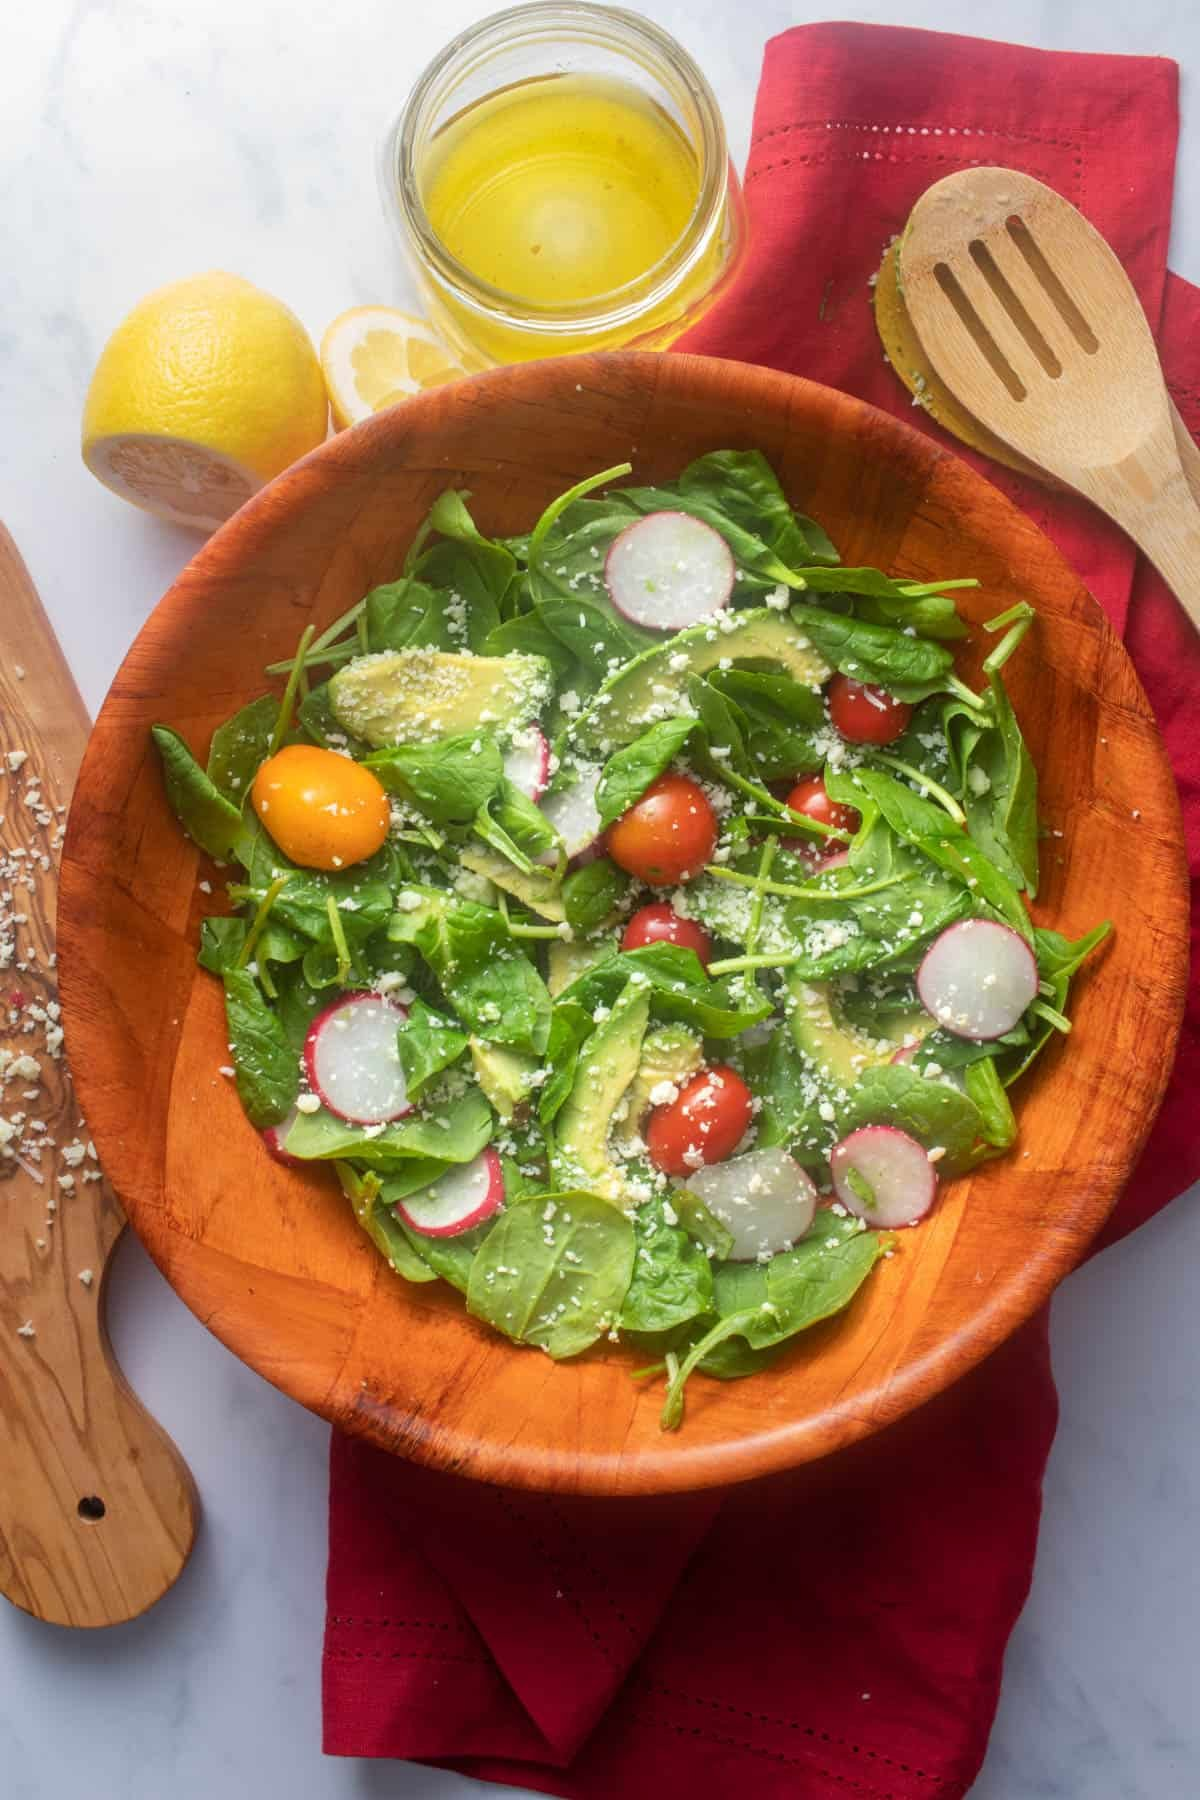 Assembled salad bowl with vinaigrette in the background